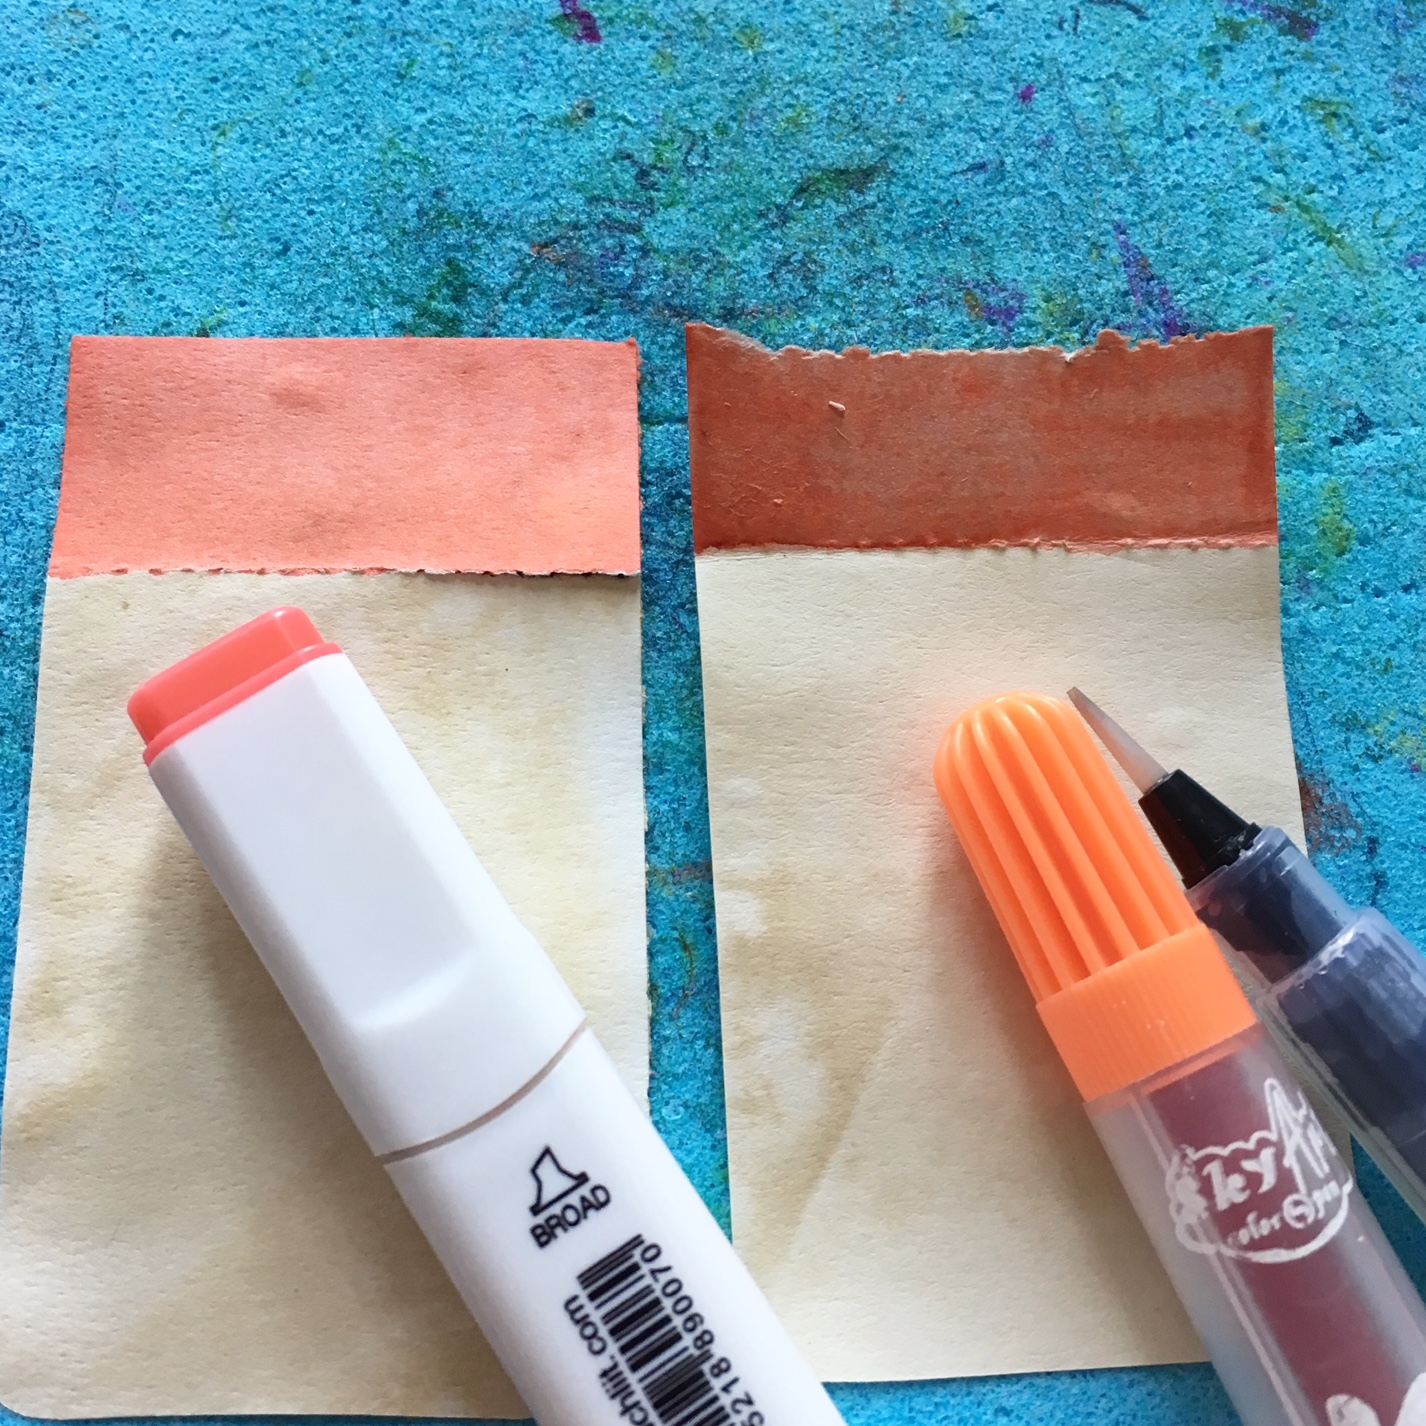 colouring part of the paper rectangles with orange alcoholic marker and water markers and water container brush